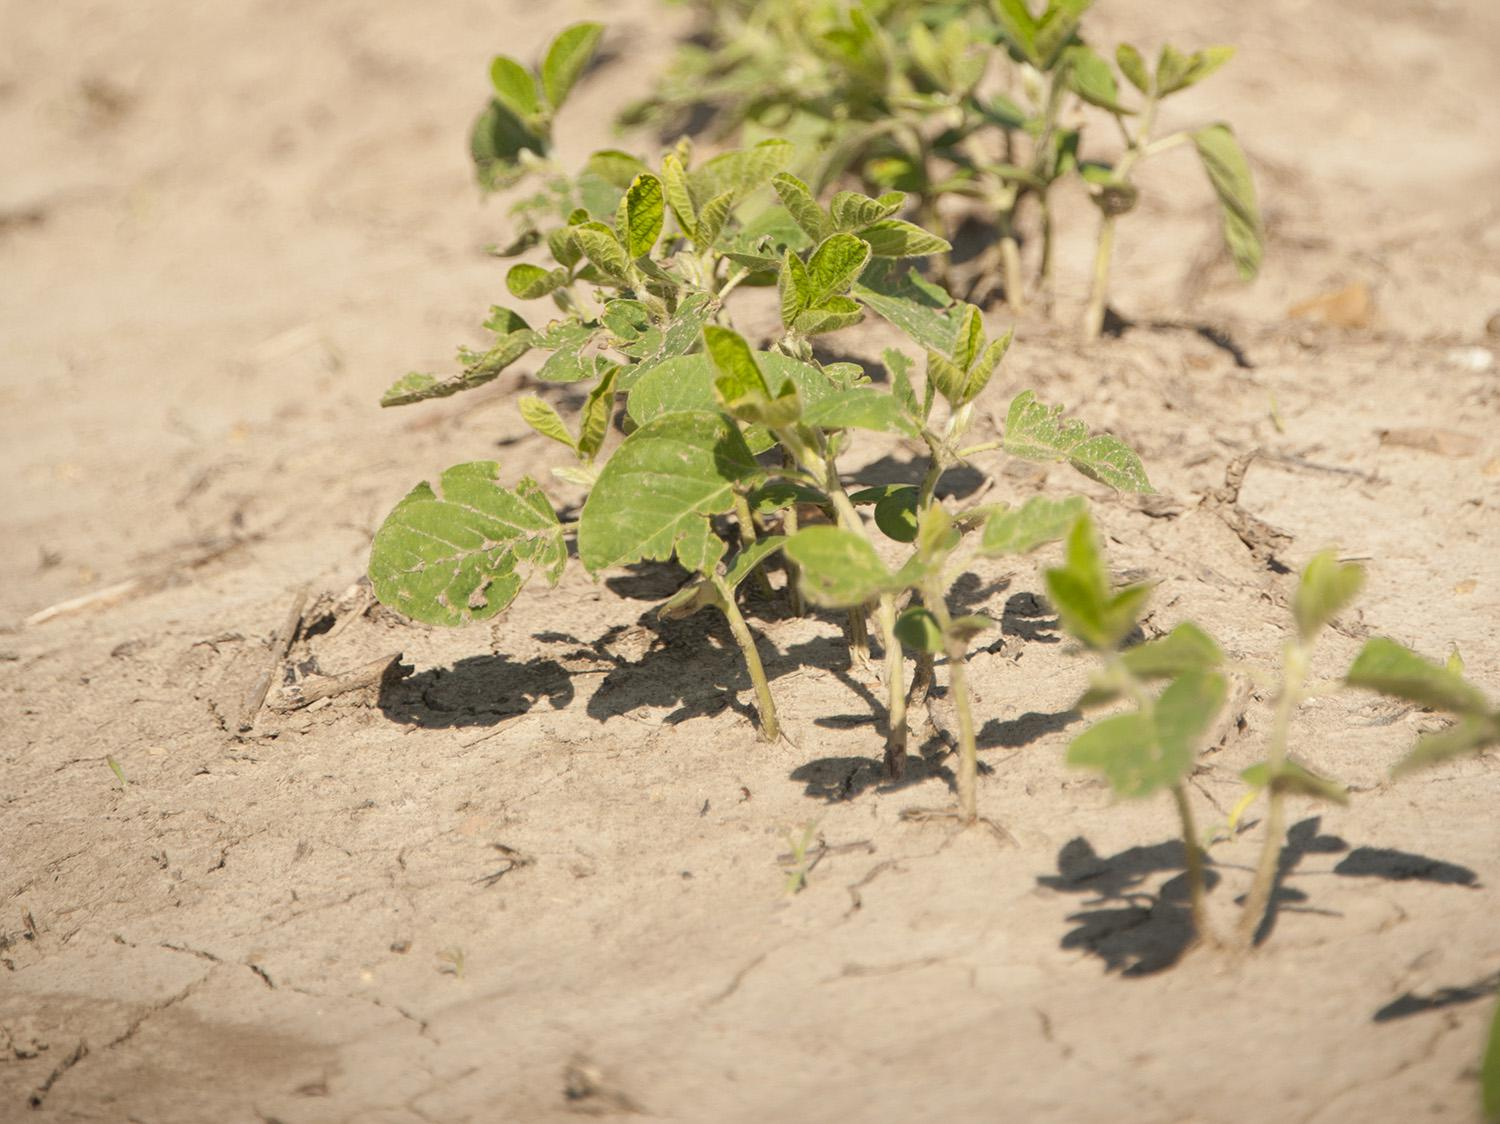 Dry, muggy June conditions have not stopped soybeans from thriving this growing season. Planted soybean acreage is more than 50,000 acres in excess of the forecast made by the U.S. Department of Agriculture in March. (File photo by MSU Ag Communications/Kat Lawrence)